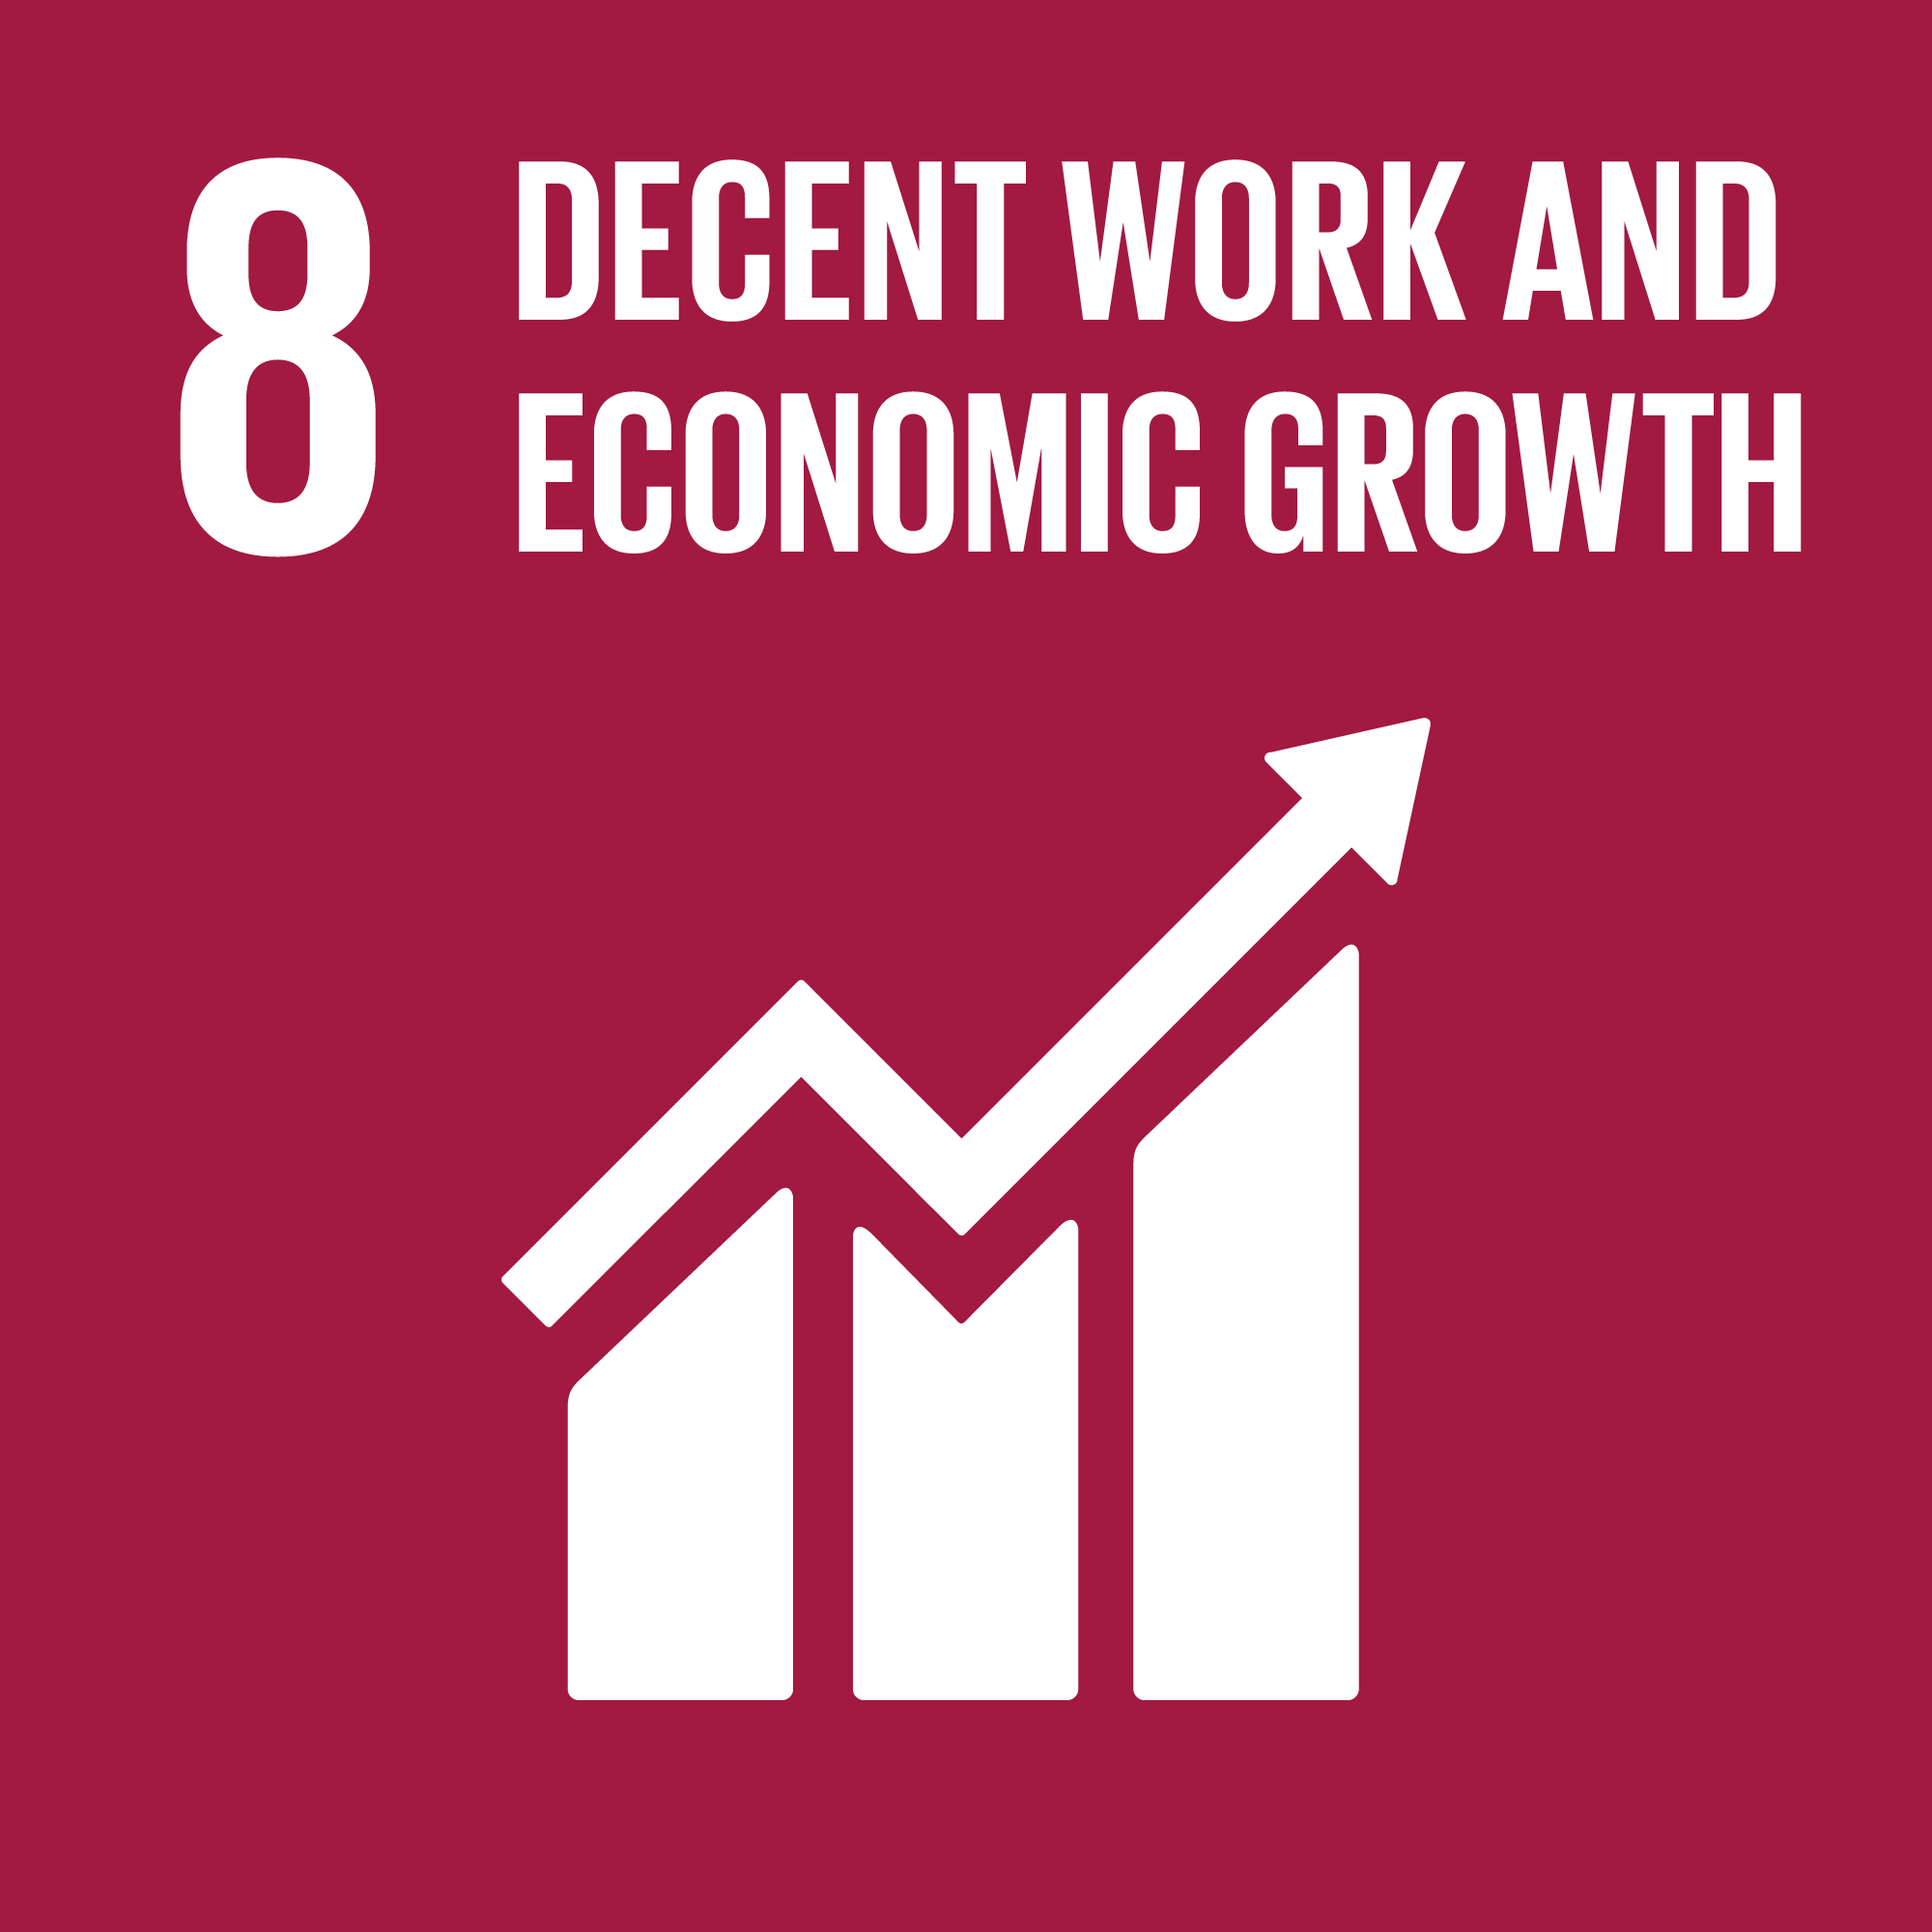 United Nations Sustainable Development Goal 8